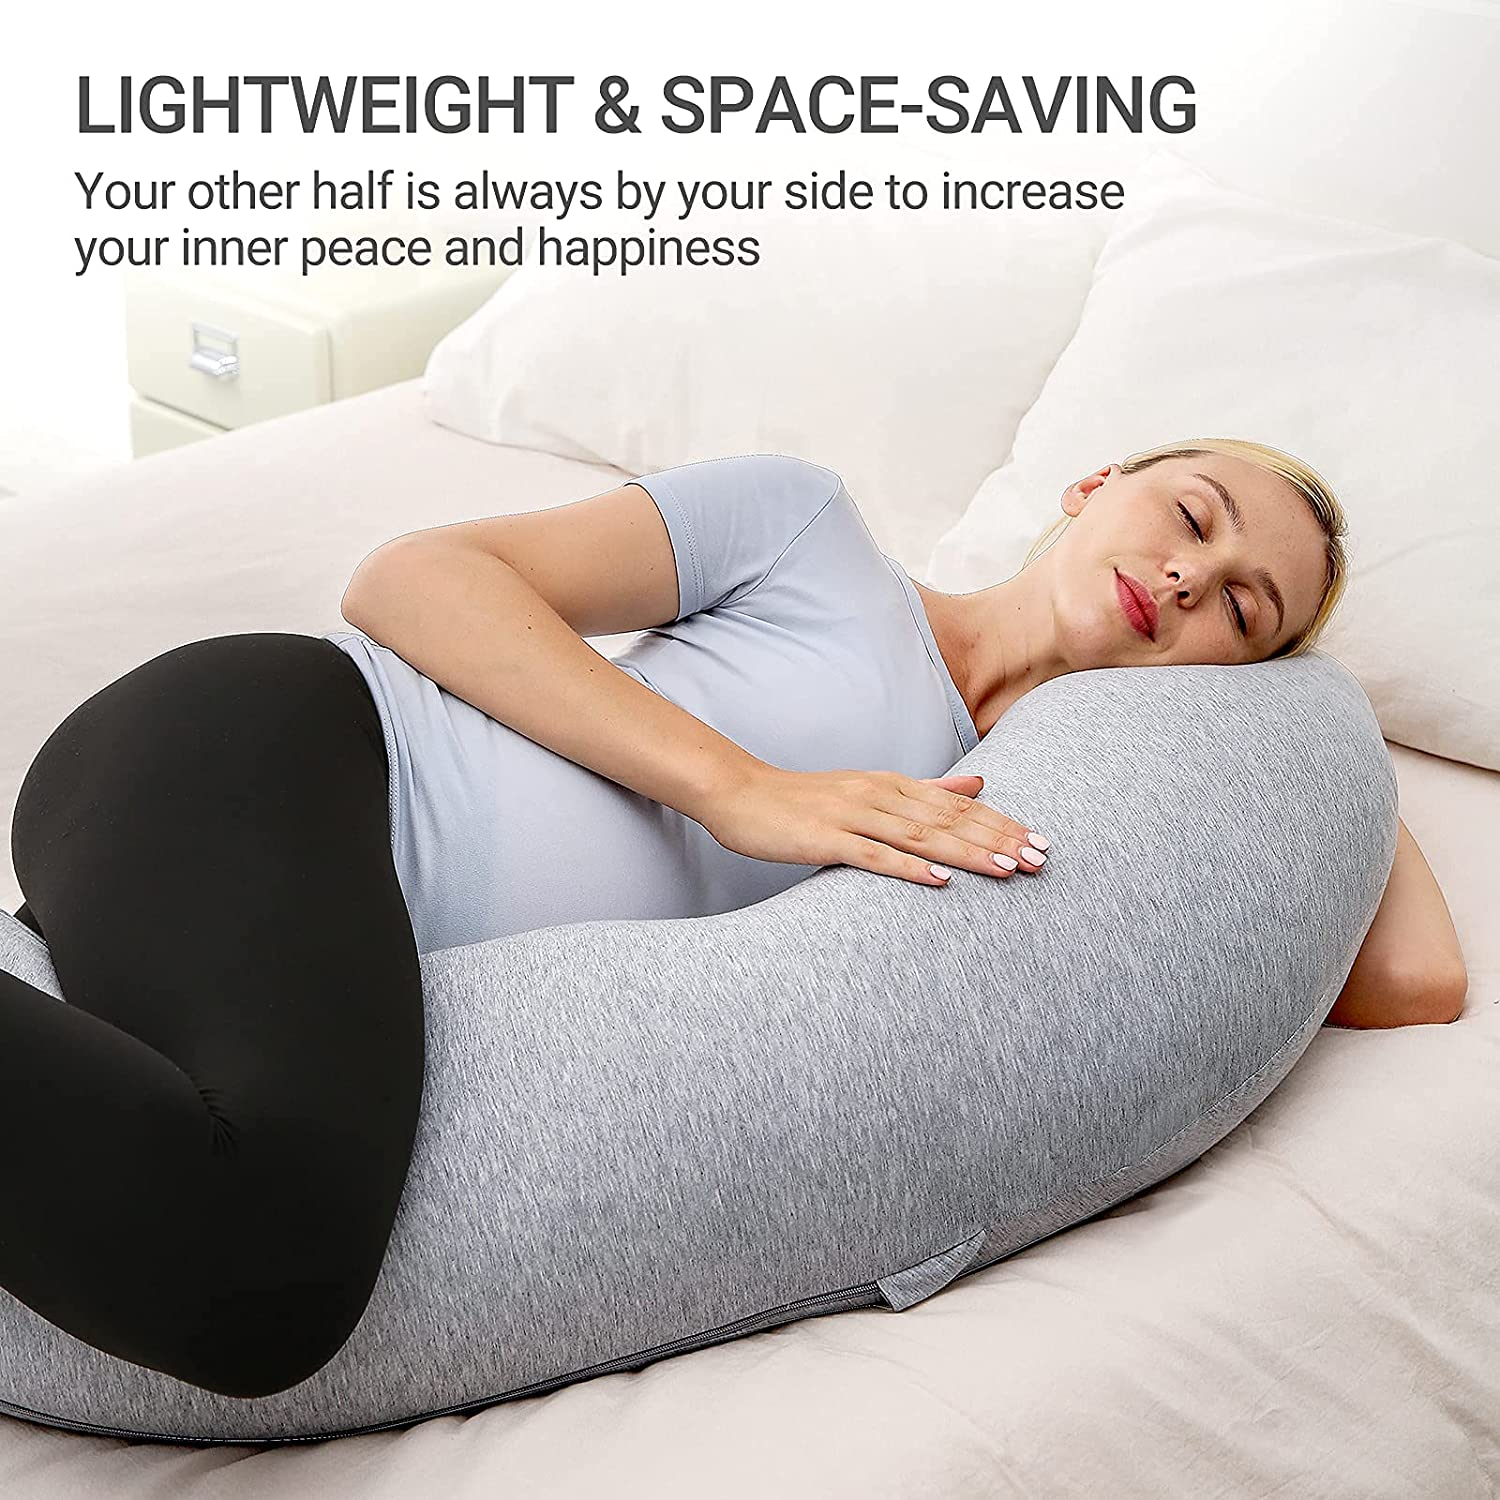 Pregnancy Pillows for Body Support, J Shaped Maternity Pillow with Removable Jersey Cover, Soft Pregnancy Body for Pillow enlarge